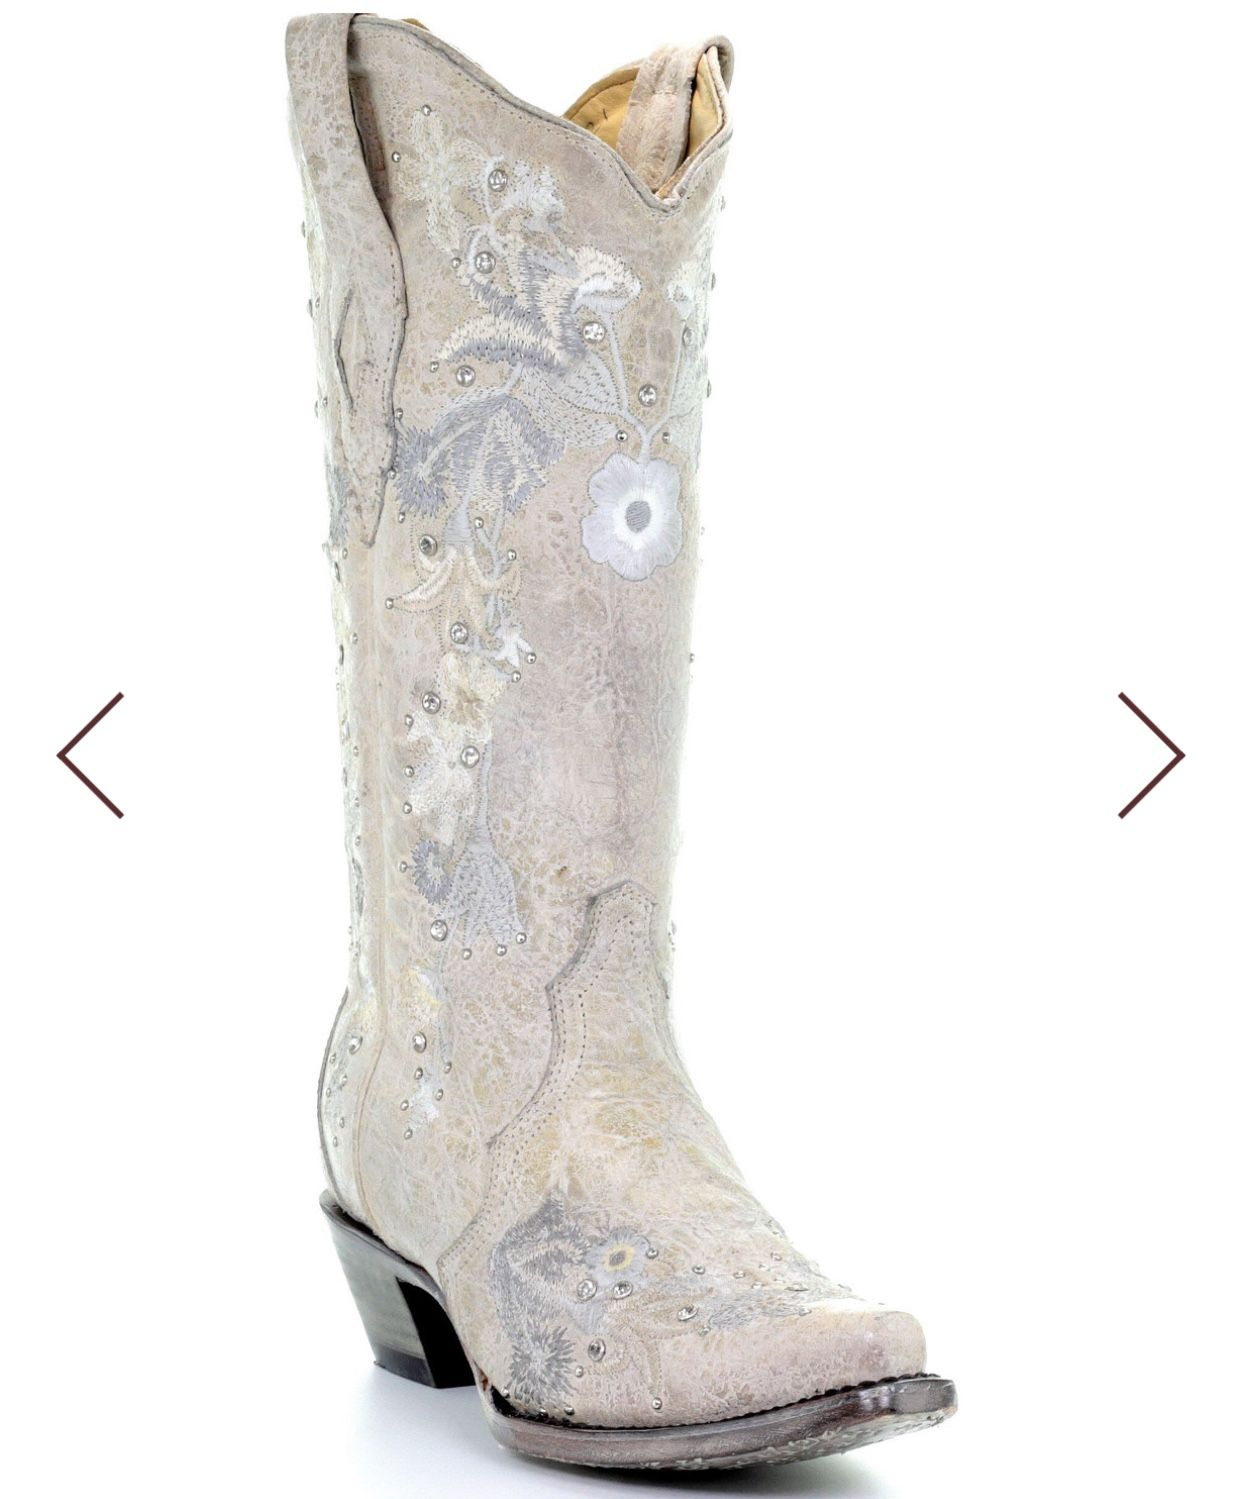 Corral womens white floral embroidered western boots